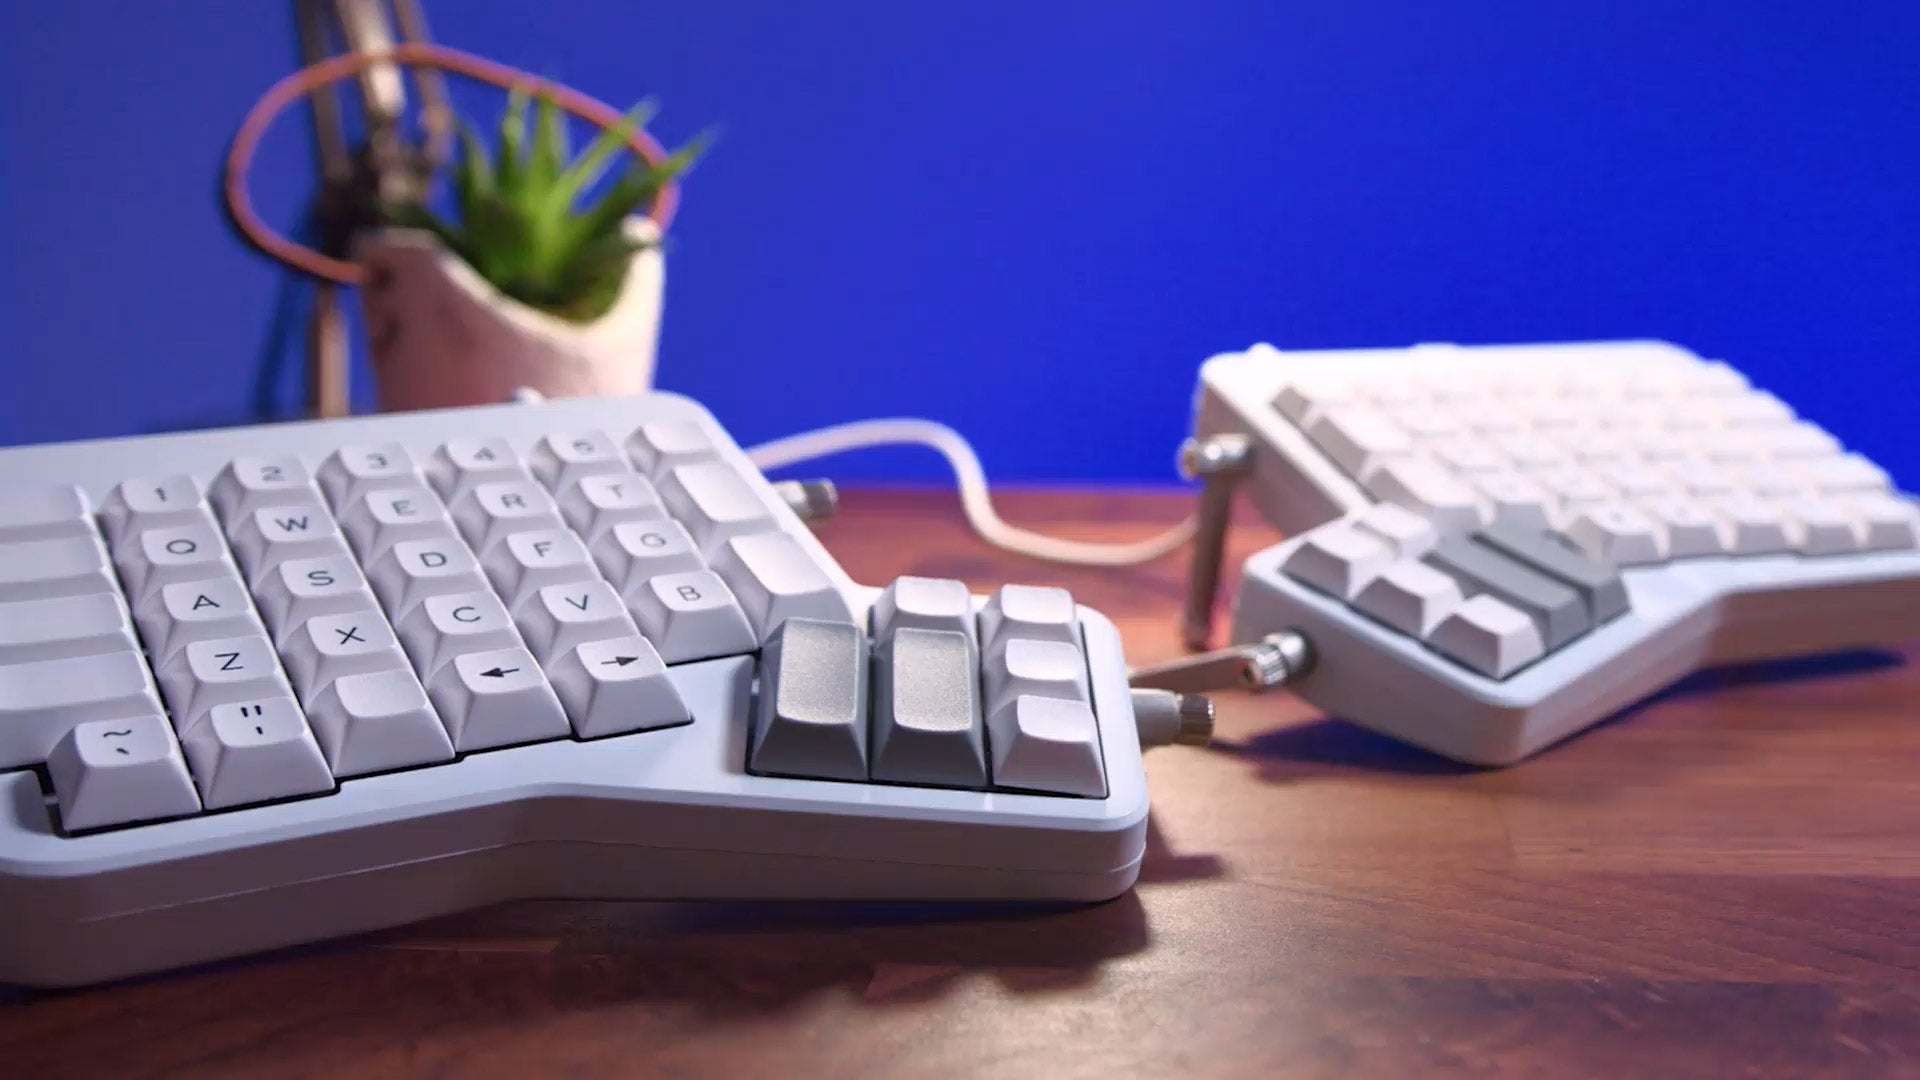 ErgoDox EZ: An Incredible Mechanical Ergonomic Keyboard